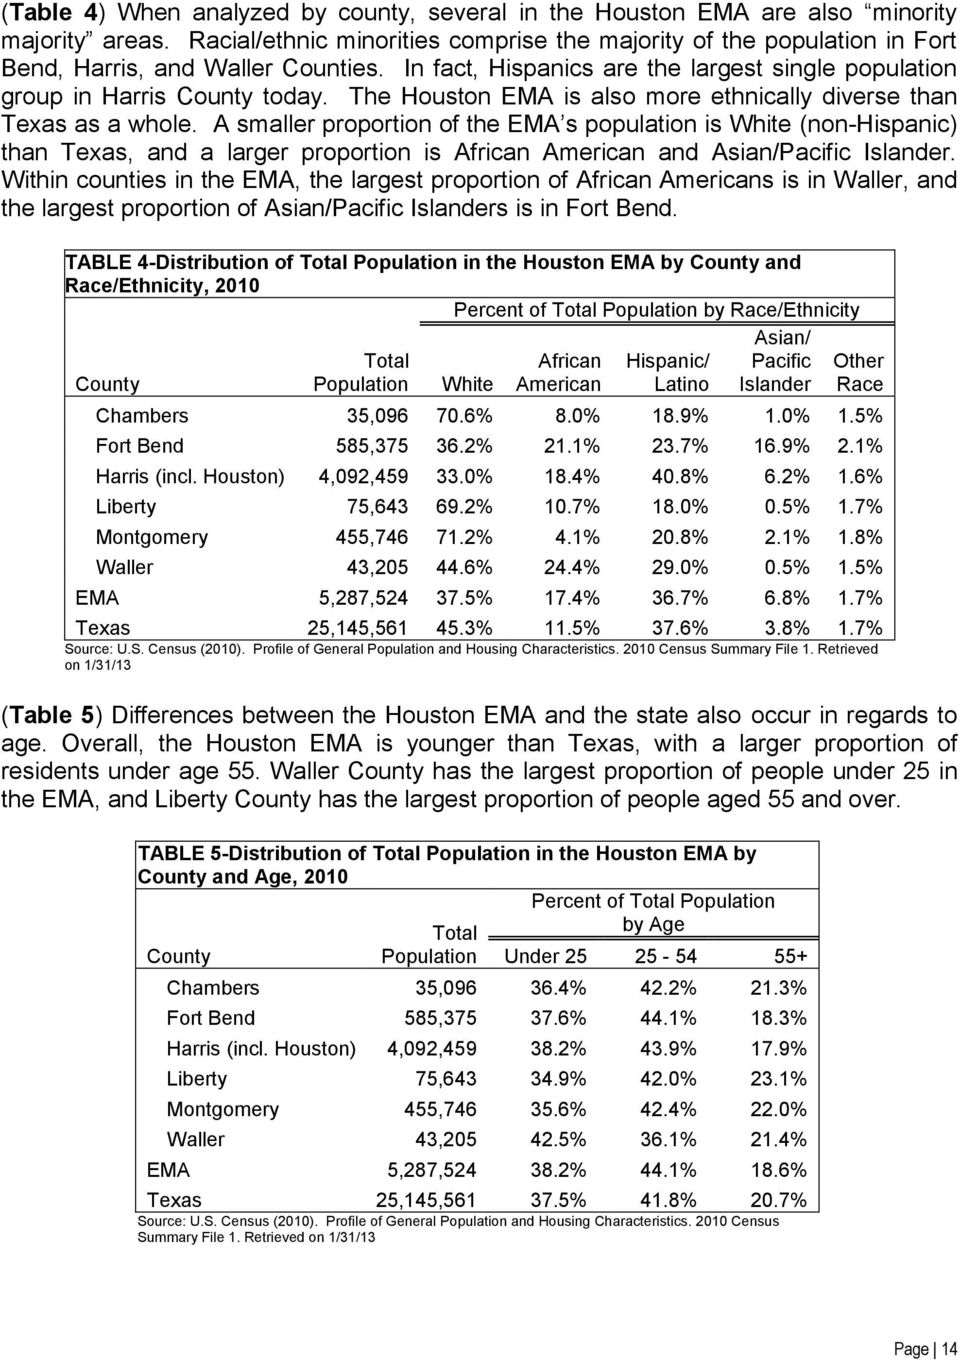 The Houston EMA is also more ethnically diverse than Texas as a whole.